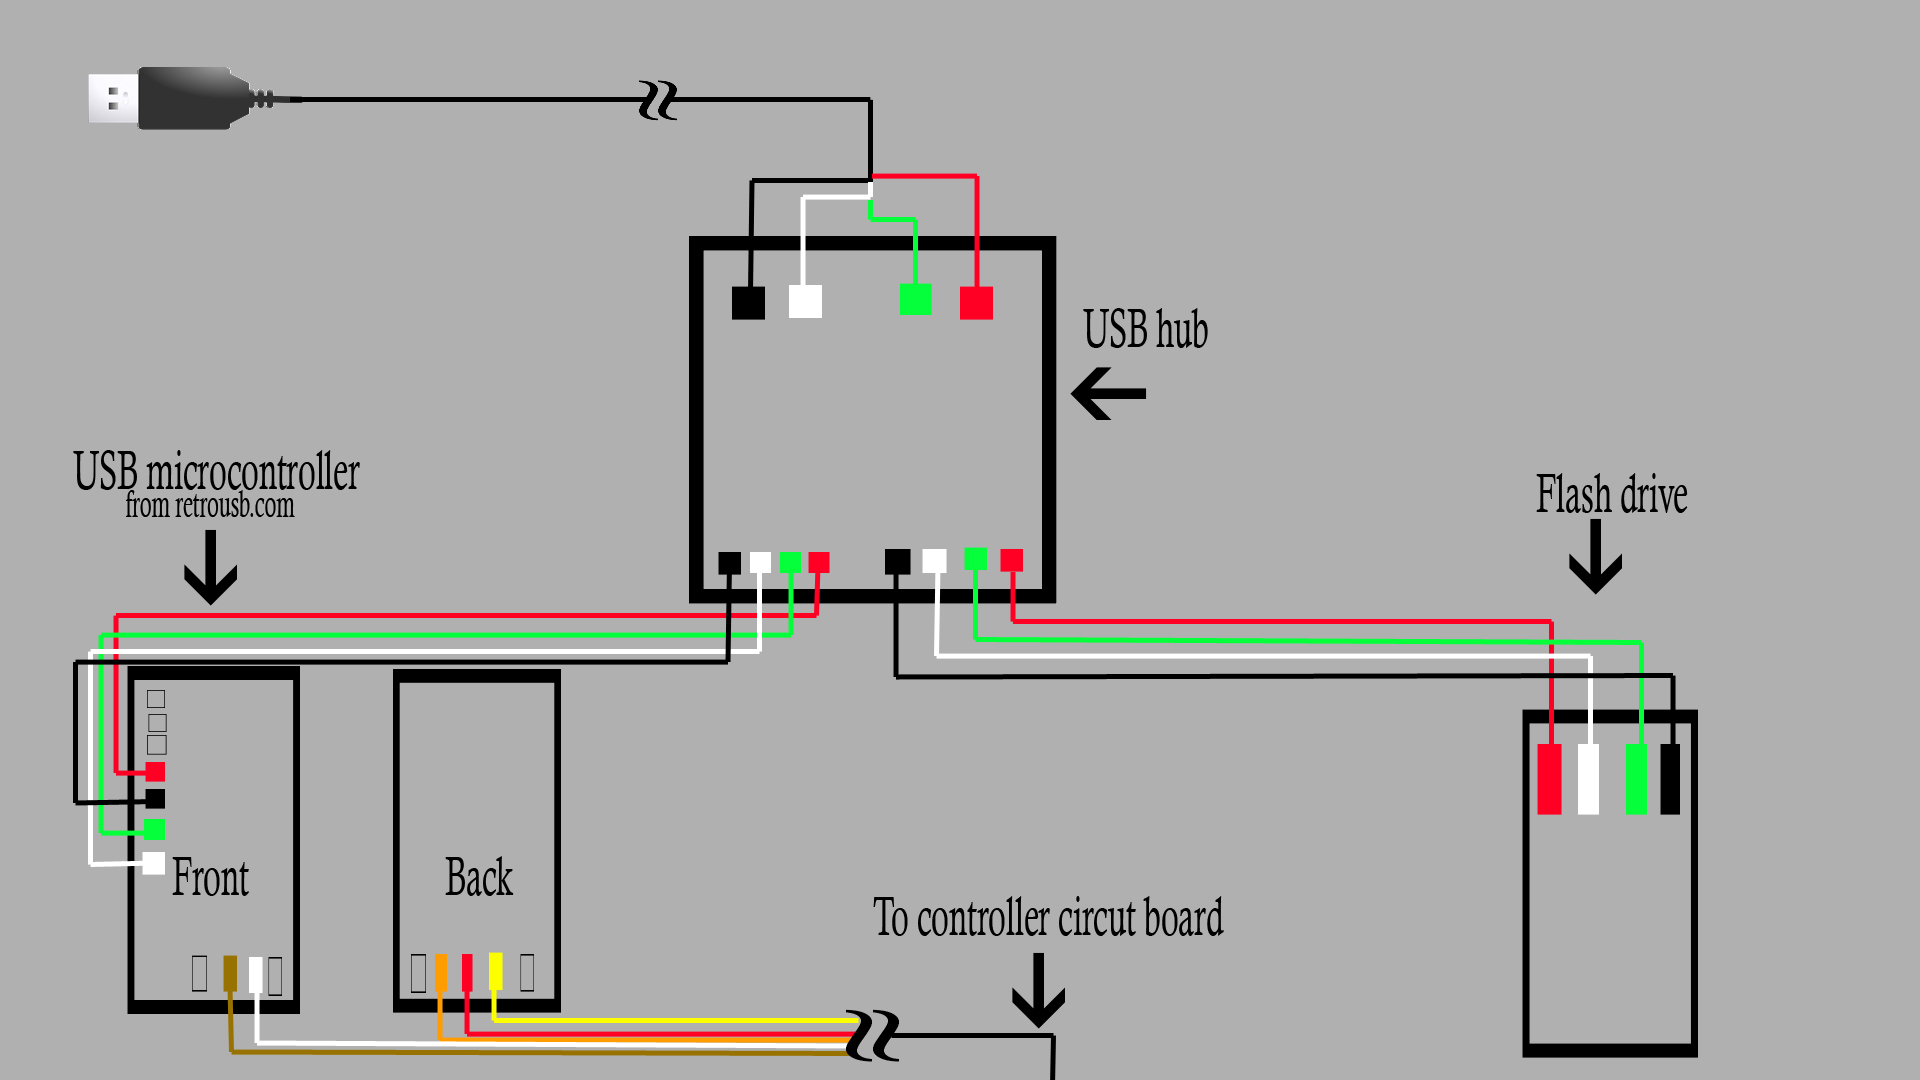 Wiring Schematic For Usb To Vga Adapter | Wiring Diagram - Vga To Male. Usb Cable Wiring Diagram